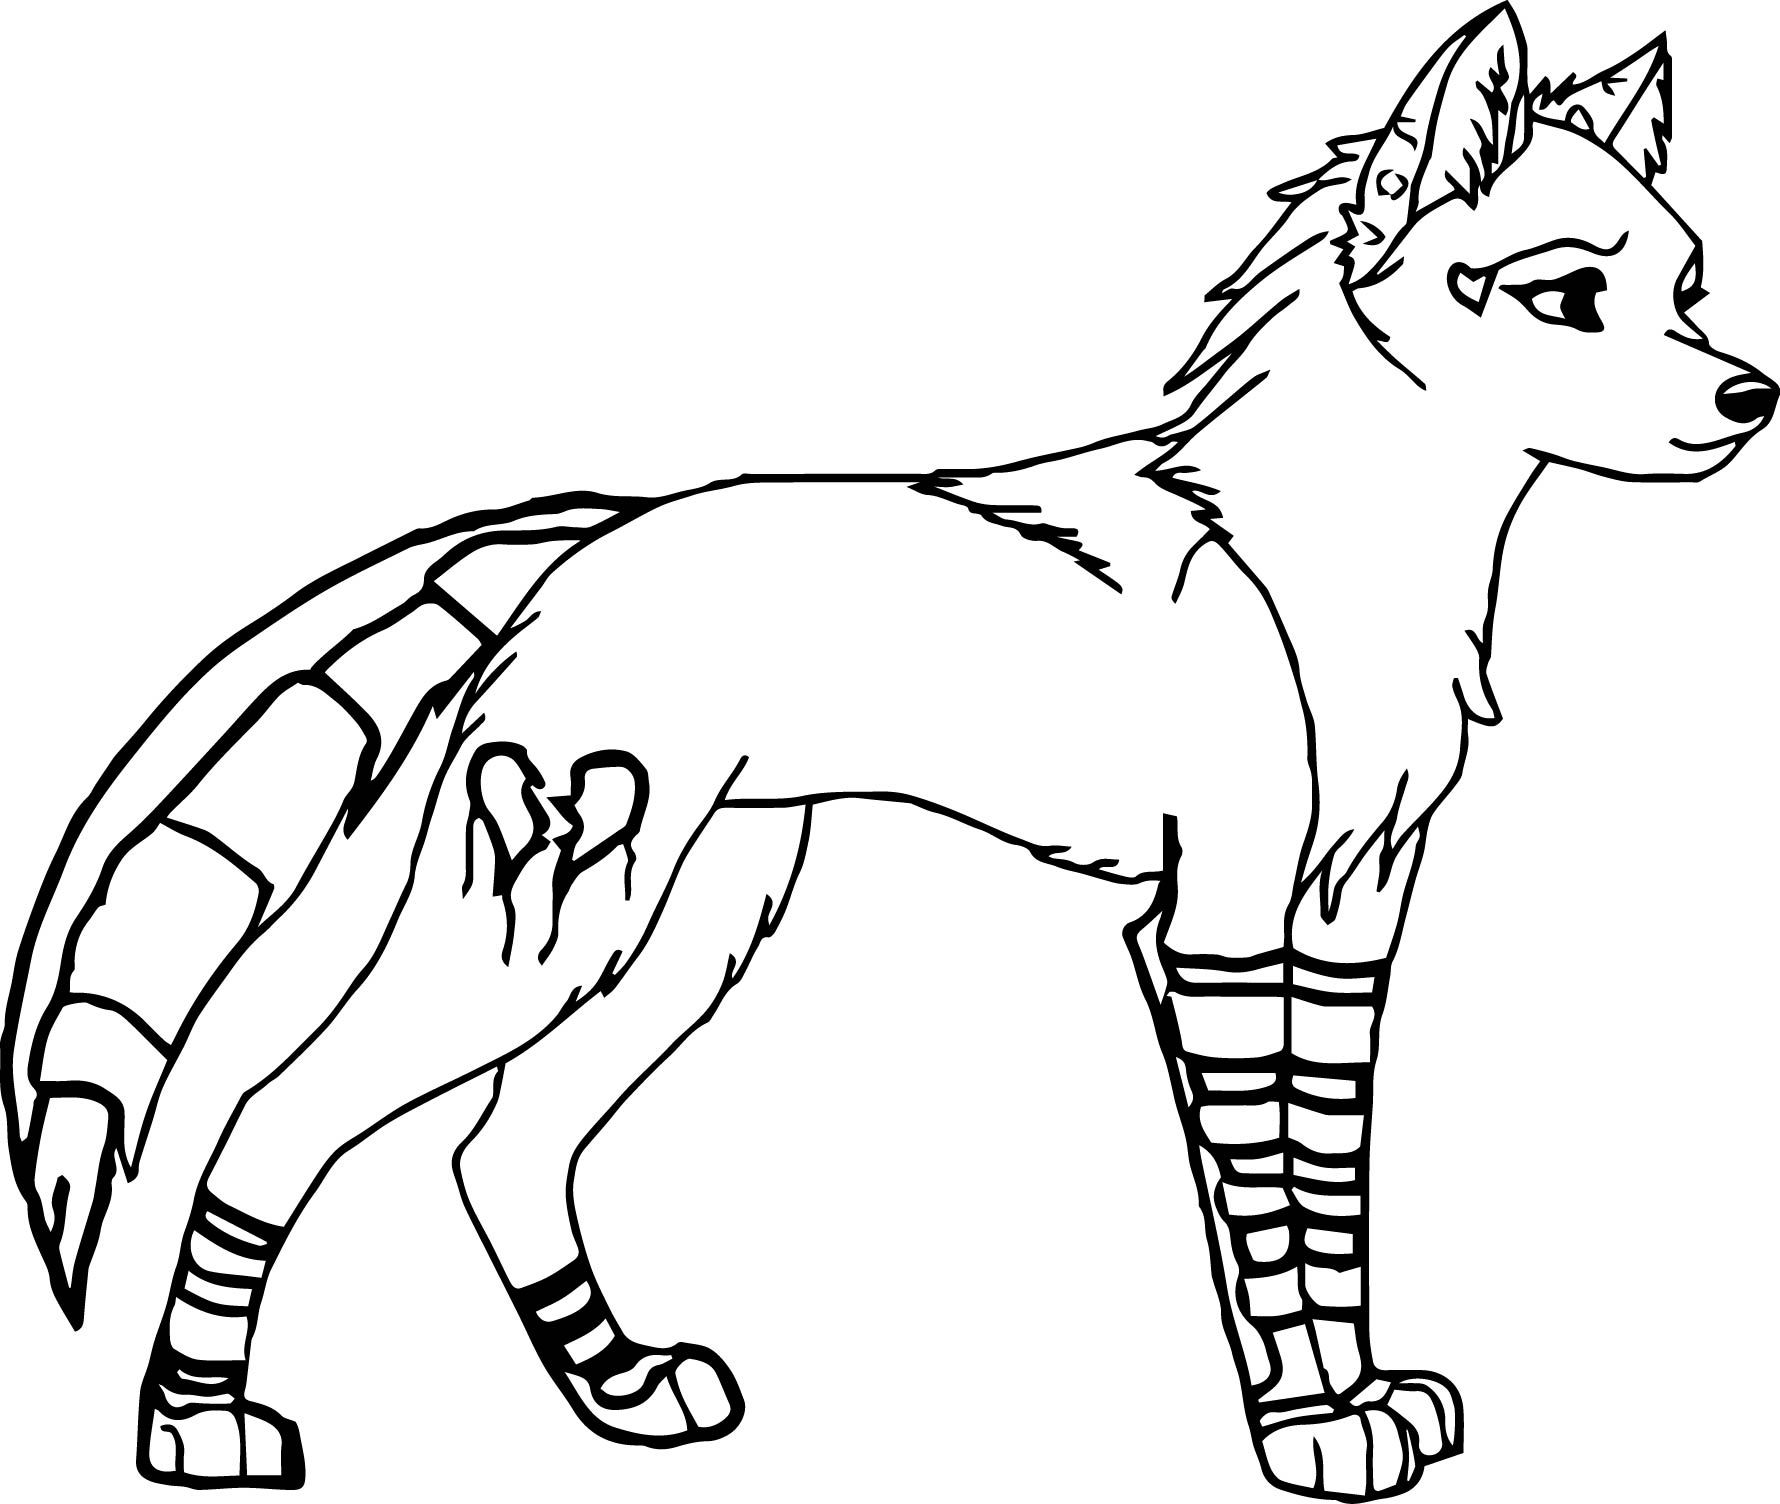 coloring pages wolves - photo#31